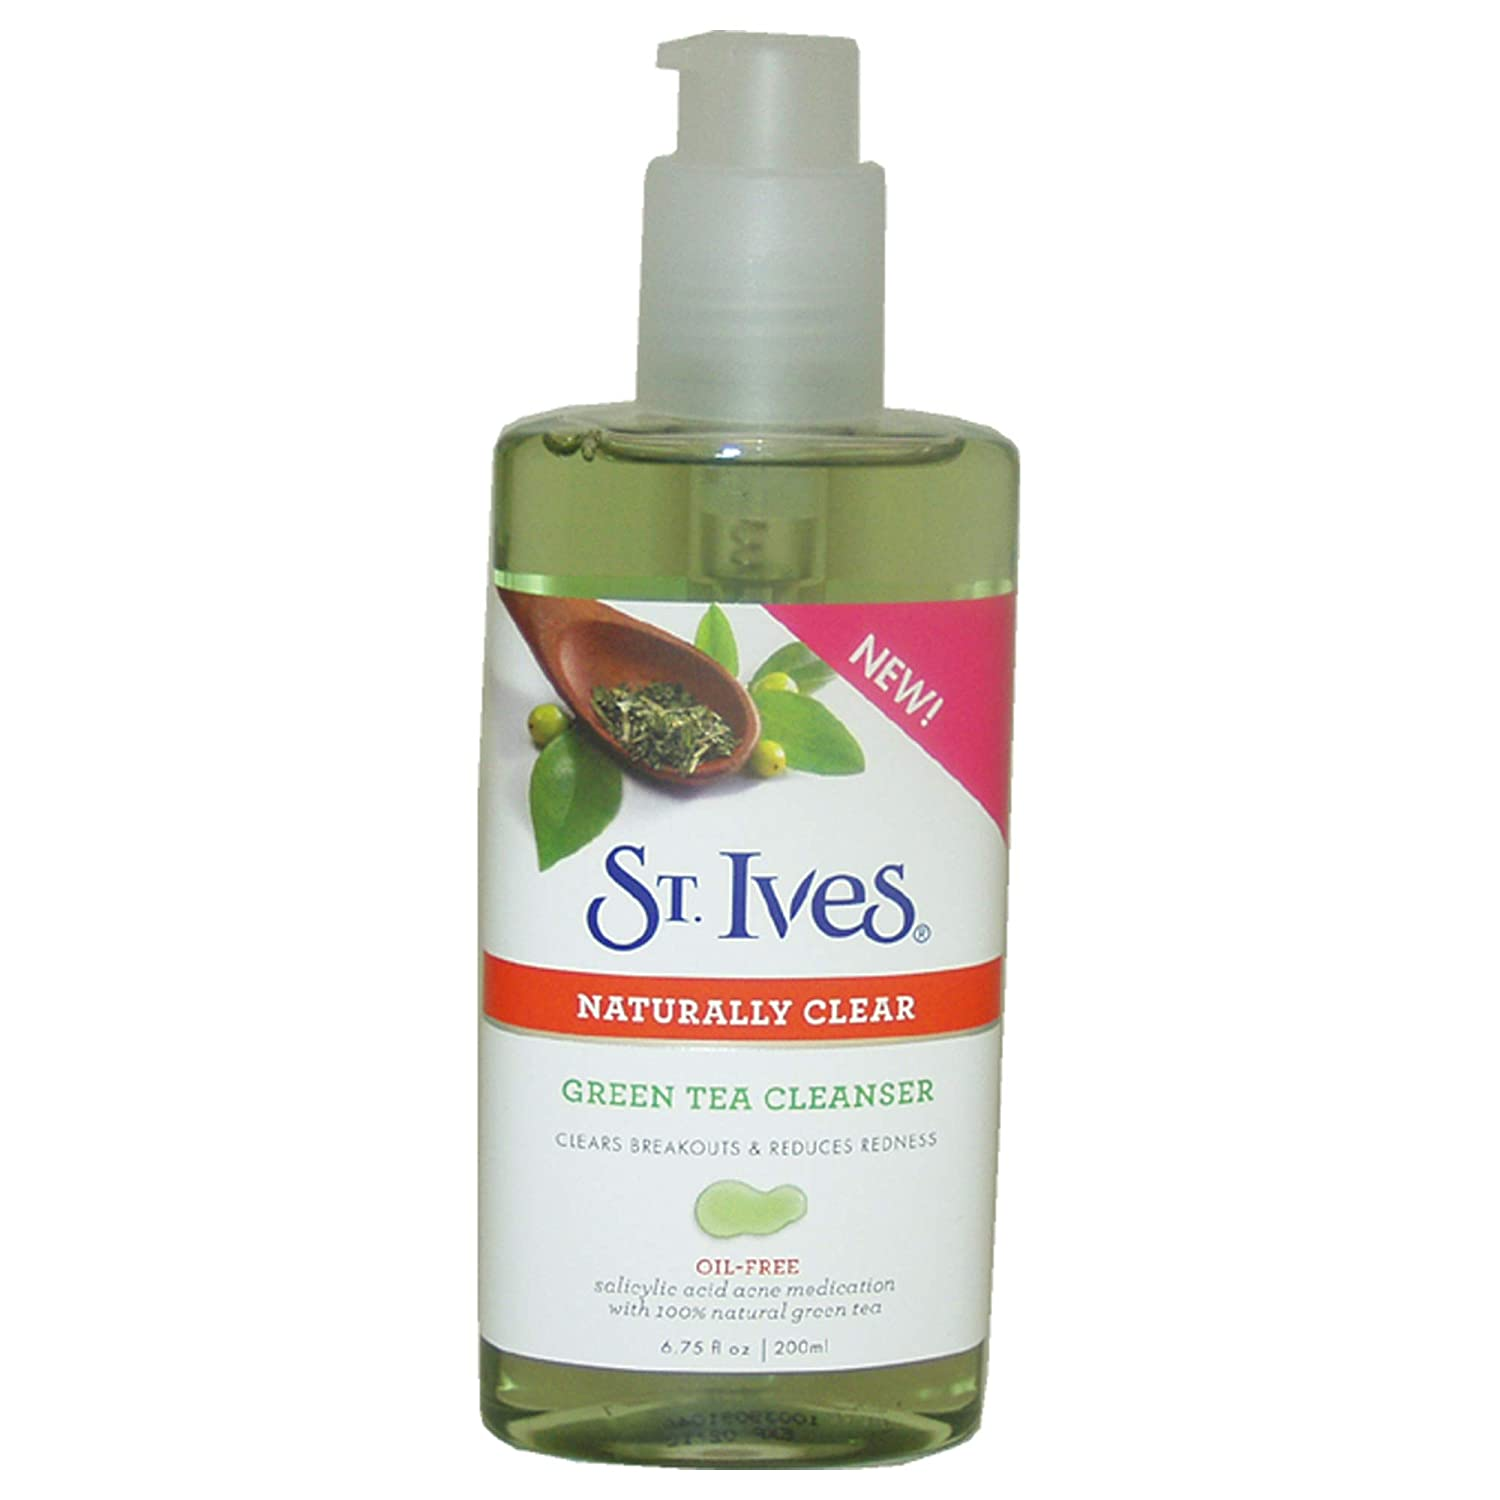 Buy St Ives Naturally Clear Green Tea Cleanser For Unisex By Blemish Control Apricot Scrub 283gr Stives 675 Ounce Online At Low Prices In India